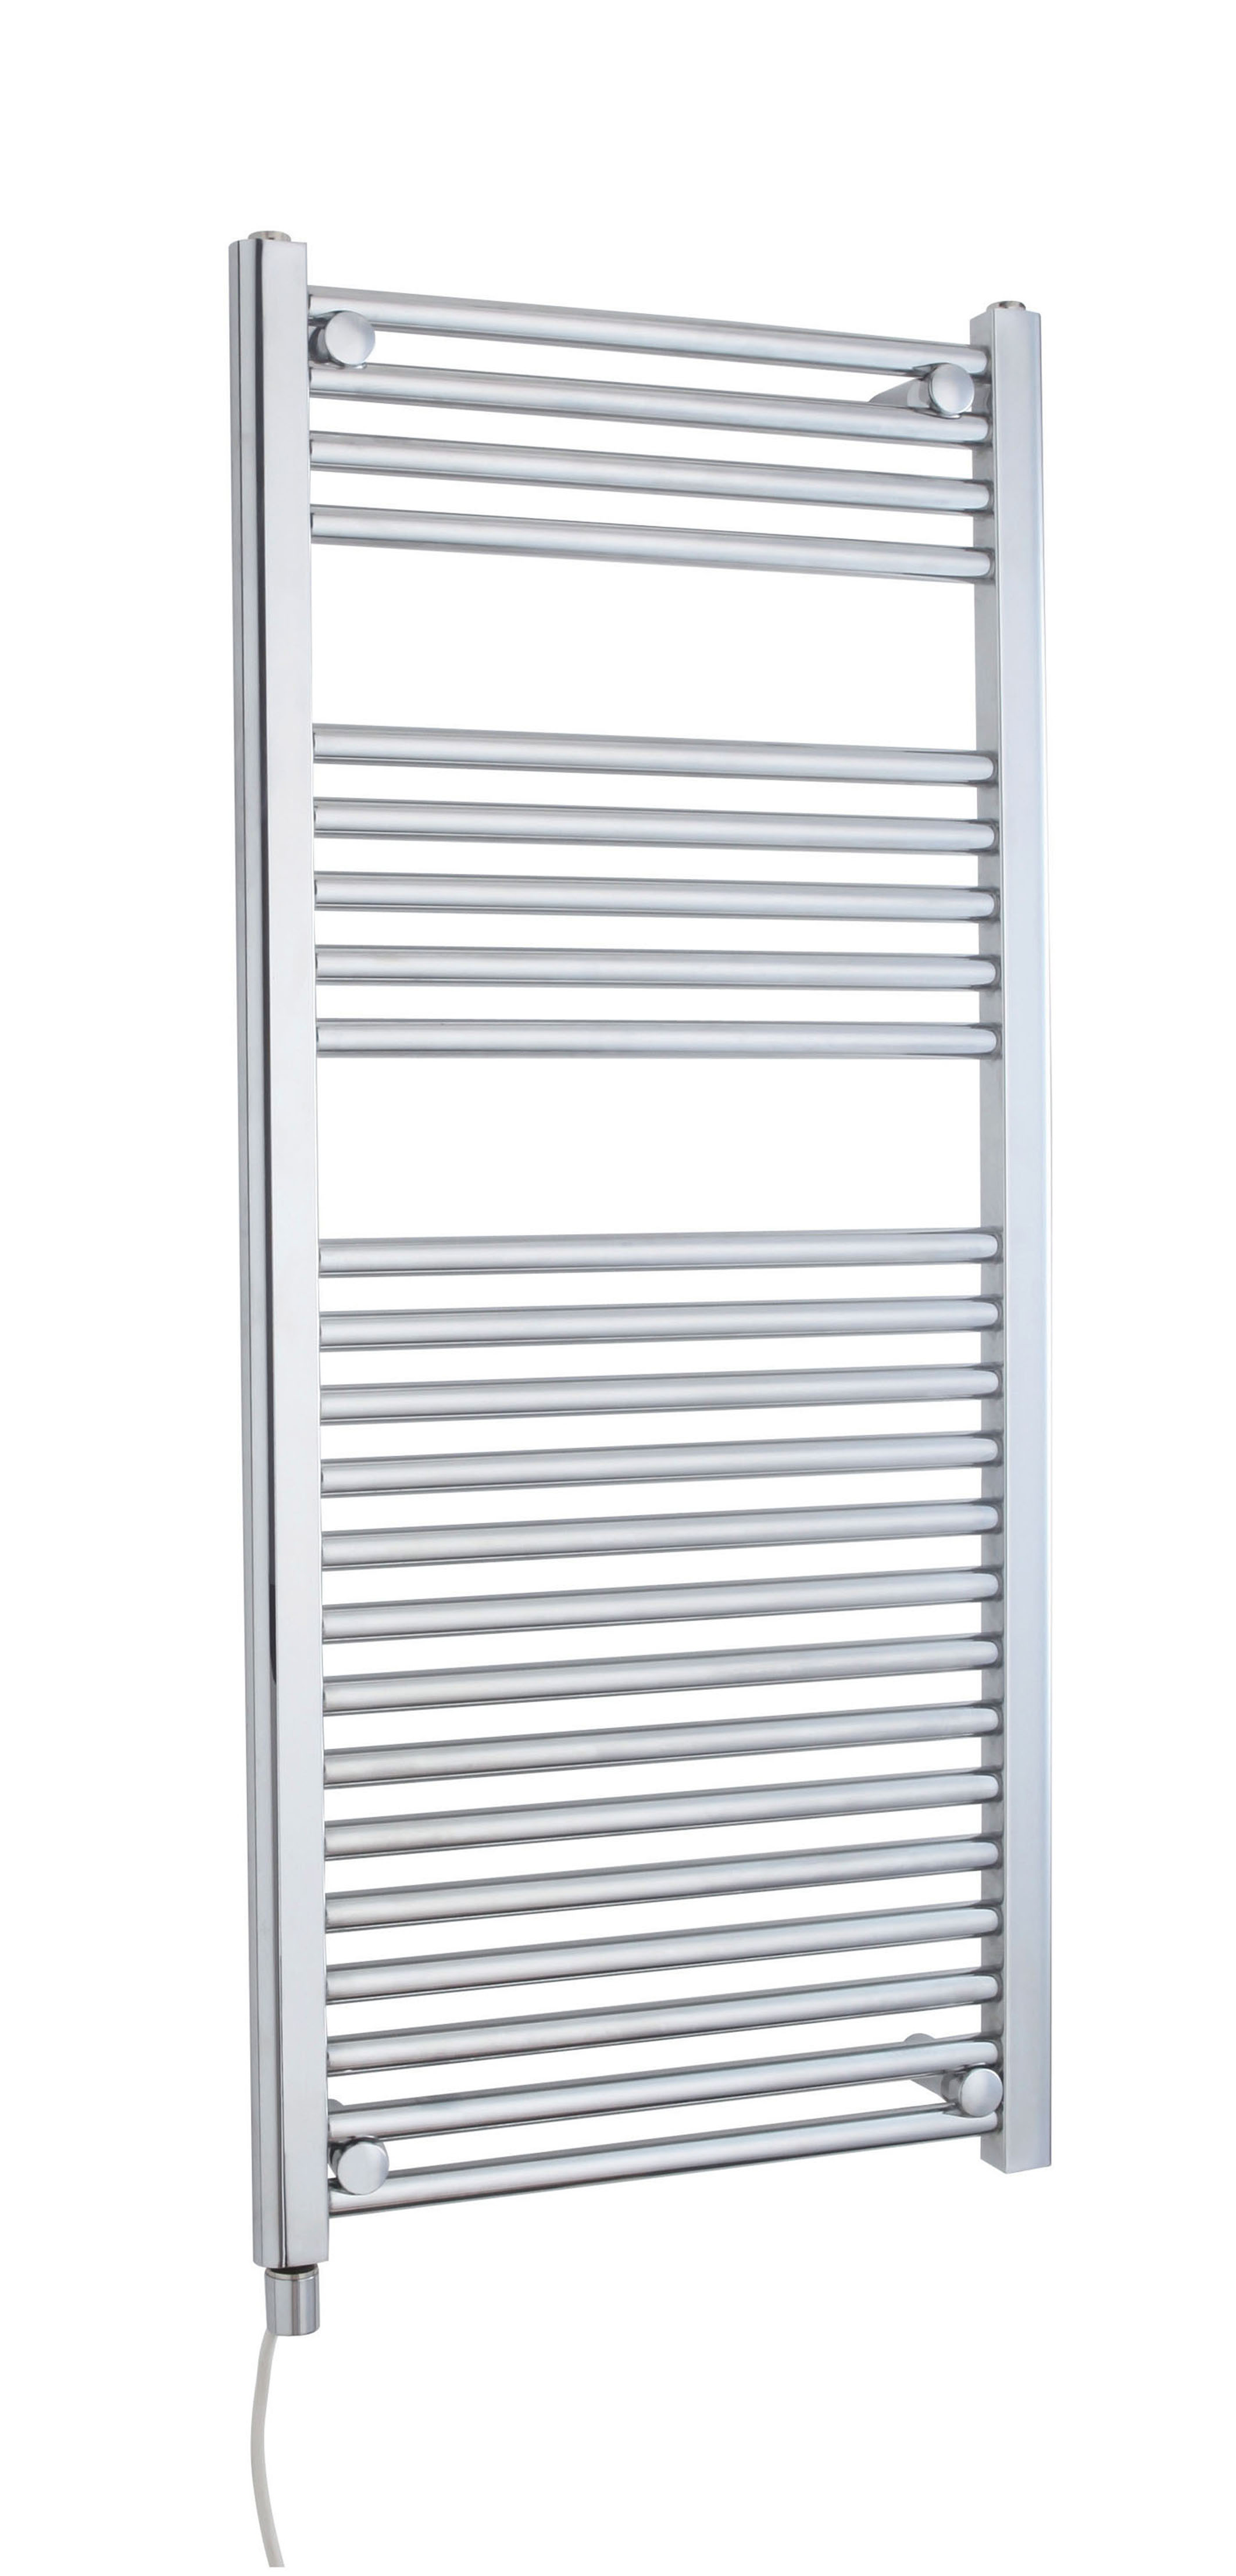 C/P Electric Only Heated Towel Rail 500x1100